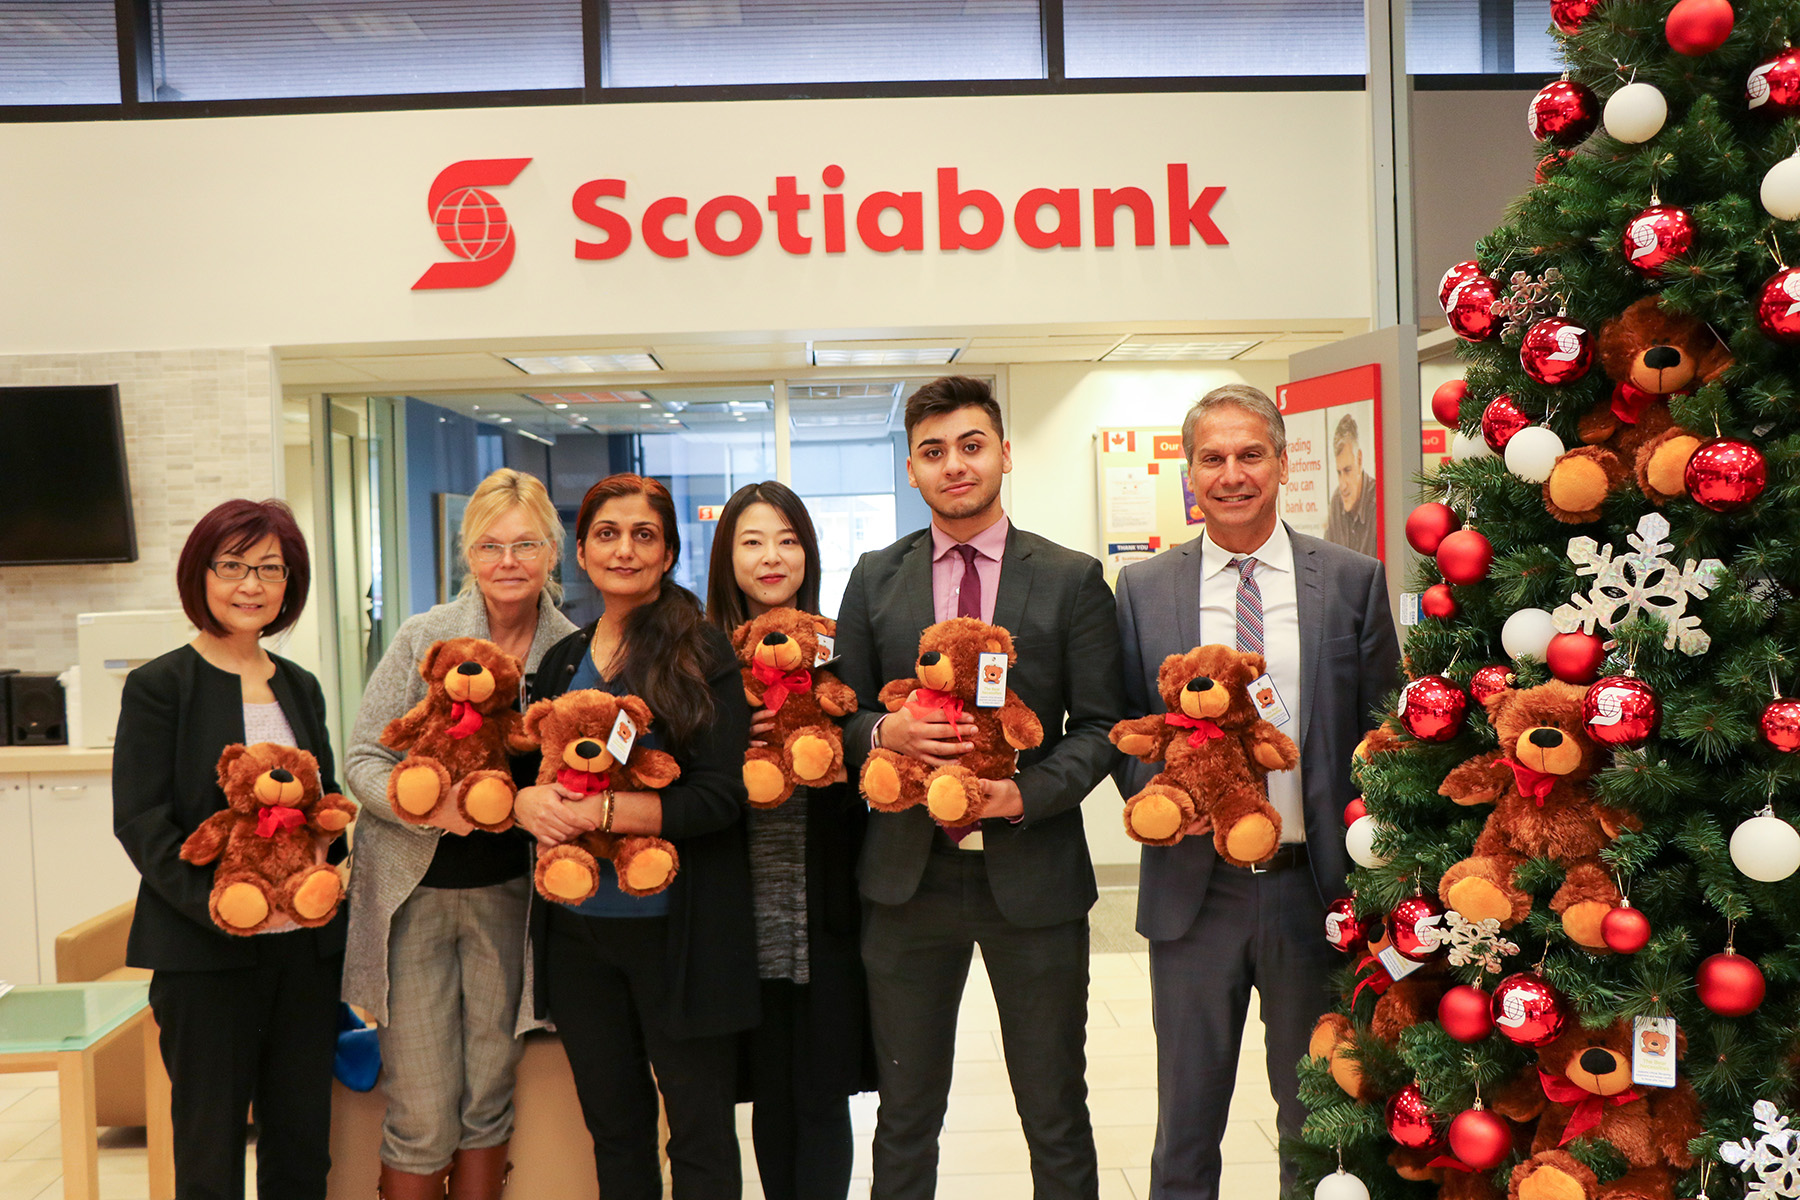 bear-scotiabank